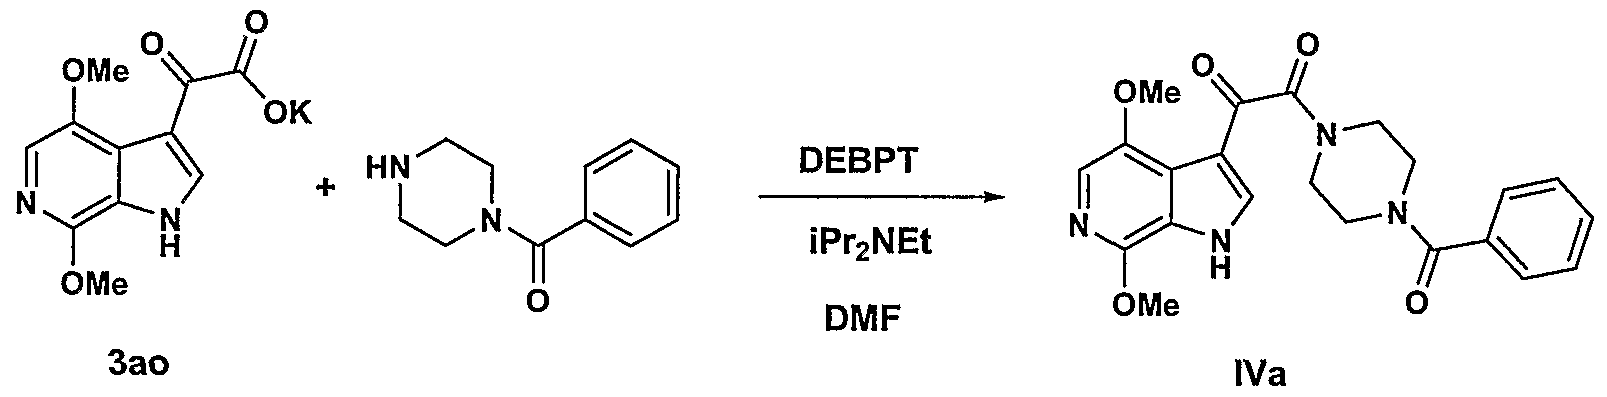 WO2005090367A1 - Prodrugs of piperazine and substituted piperidine